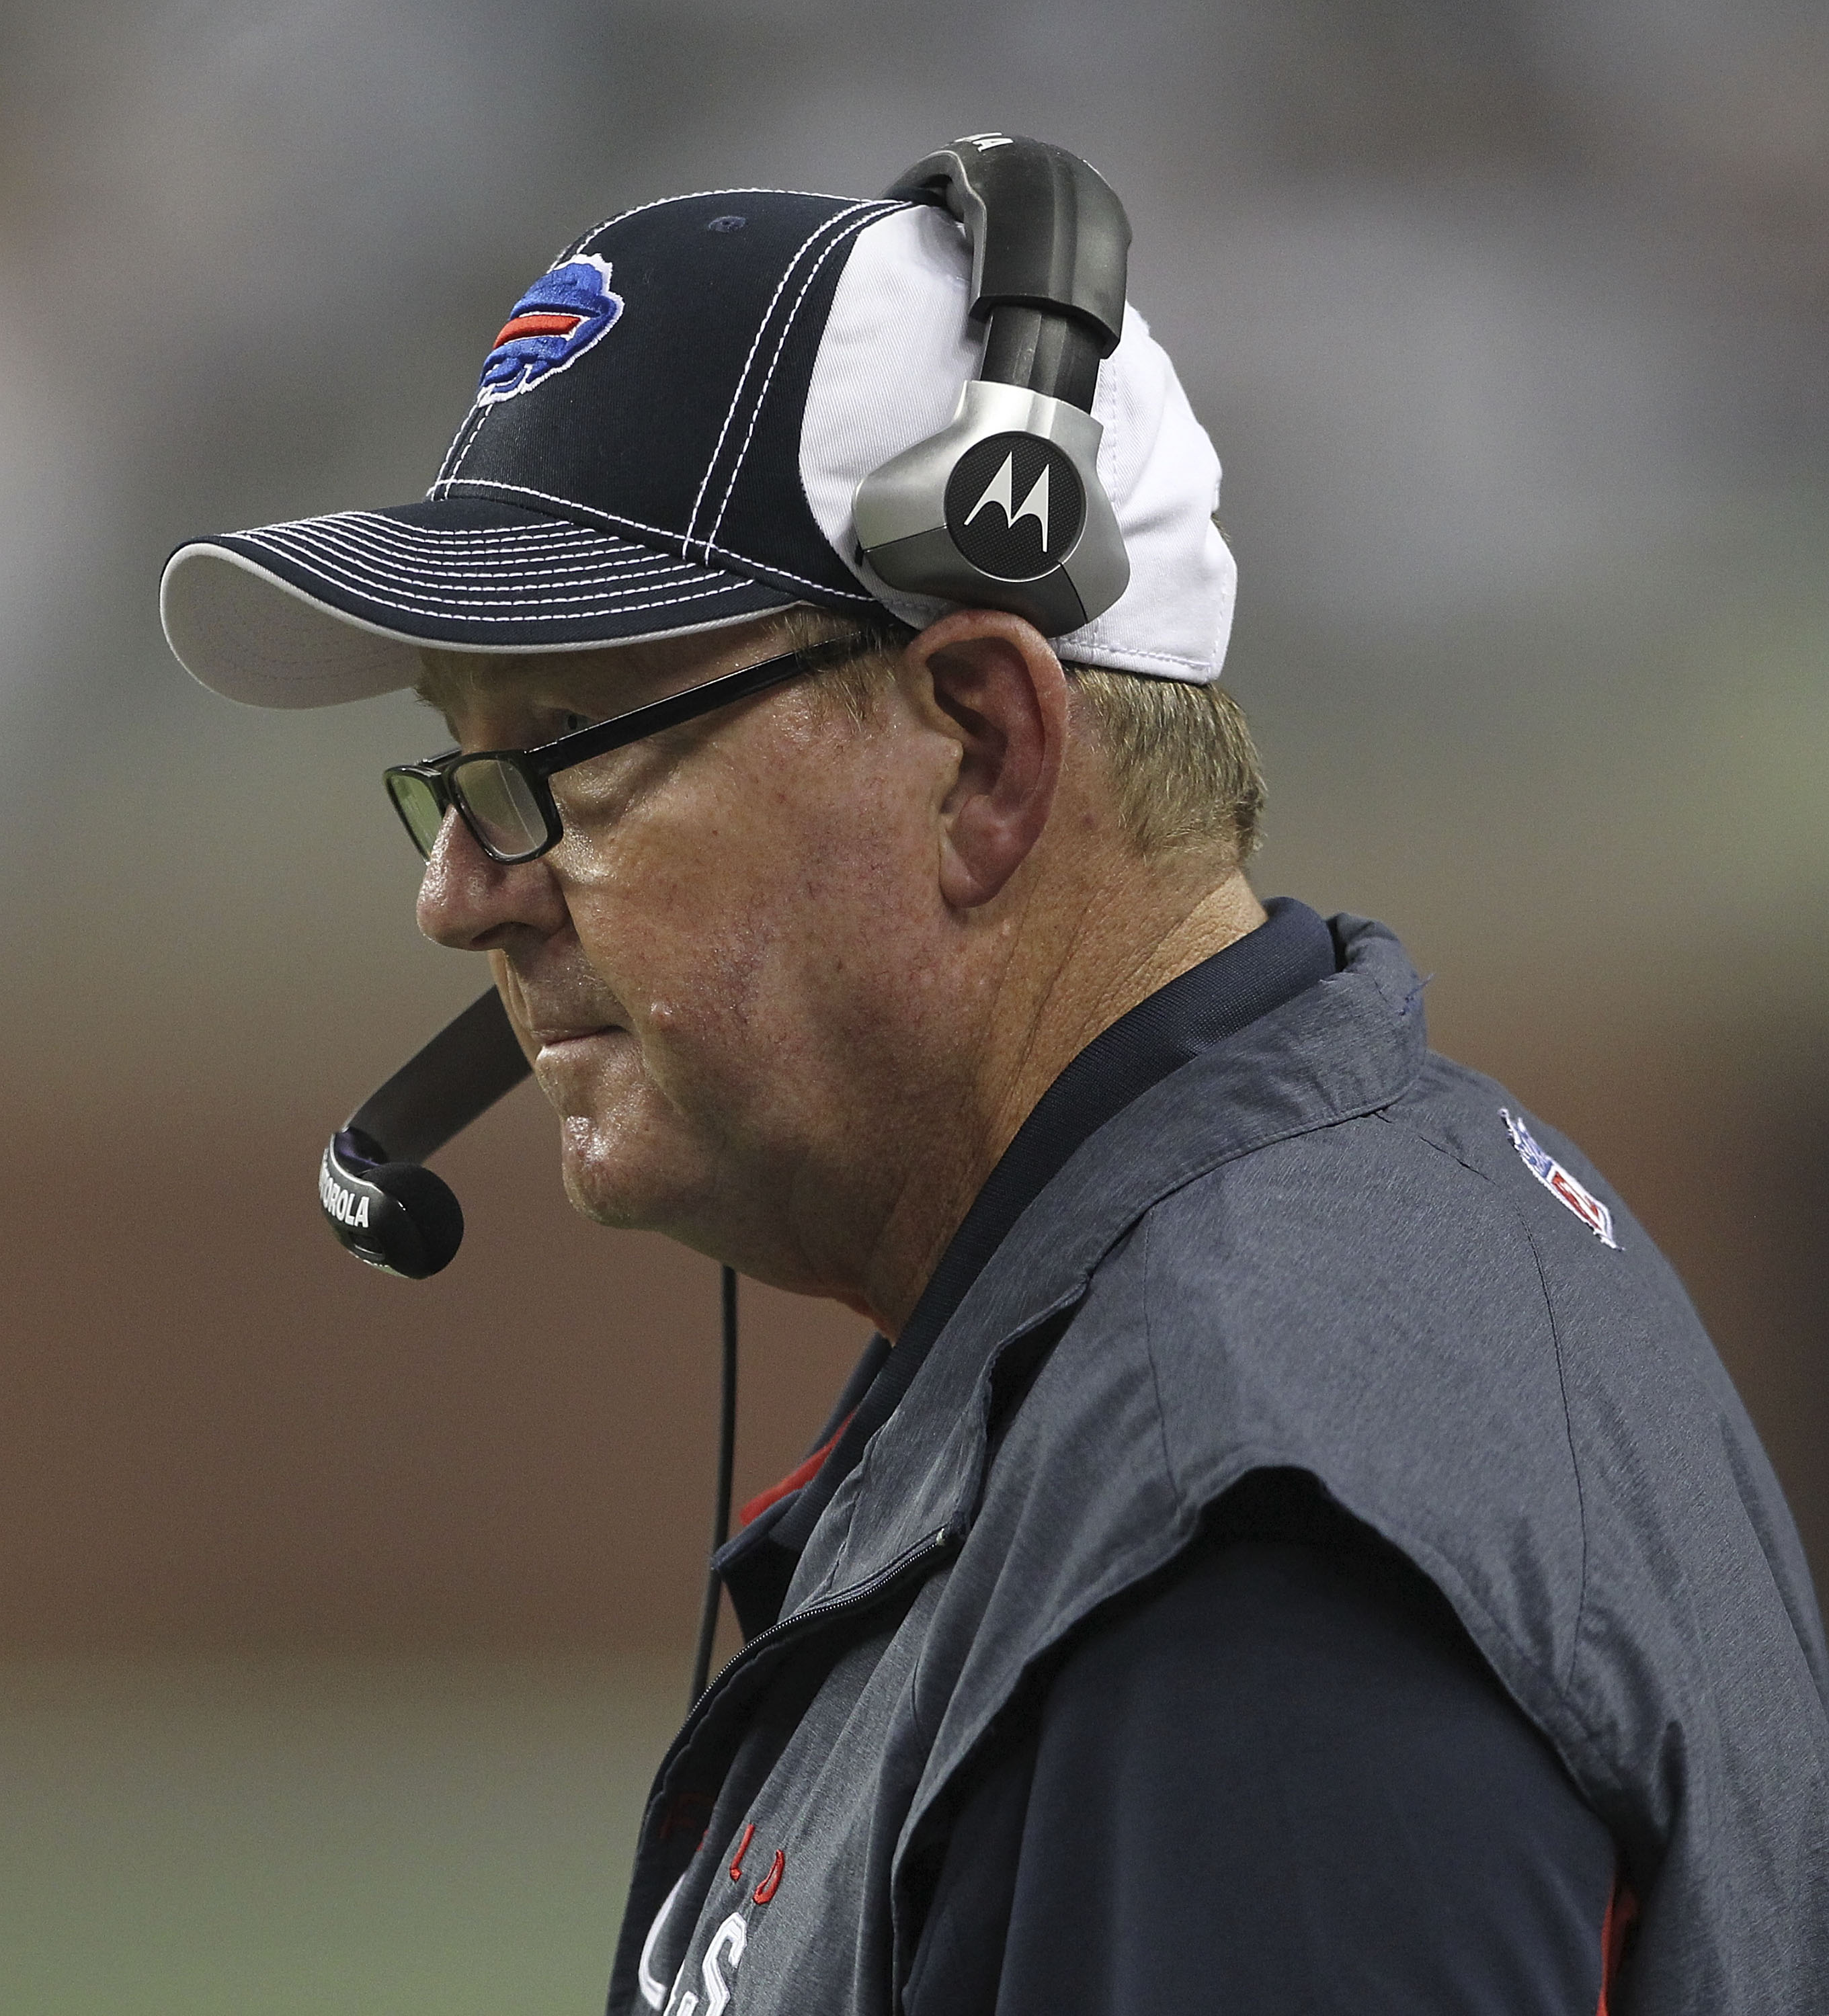 DETROIT - SEPTEMBER 02:  Buffalo Bills head coach Chan Gailey watches the action during the fouth quarter of the preseason game at Ford Field on September 2, 2010 in Detroit, Michigan. The Lions defeated the Bills 28-23.  (Photo by Leon Halip/Getty Images